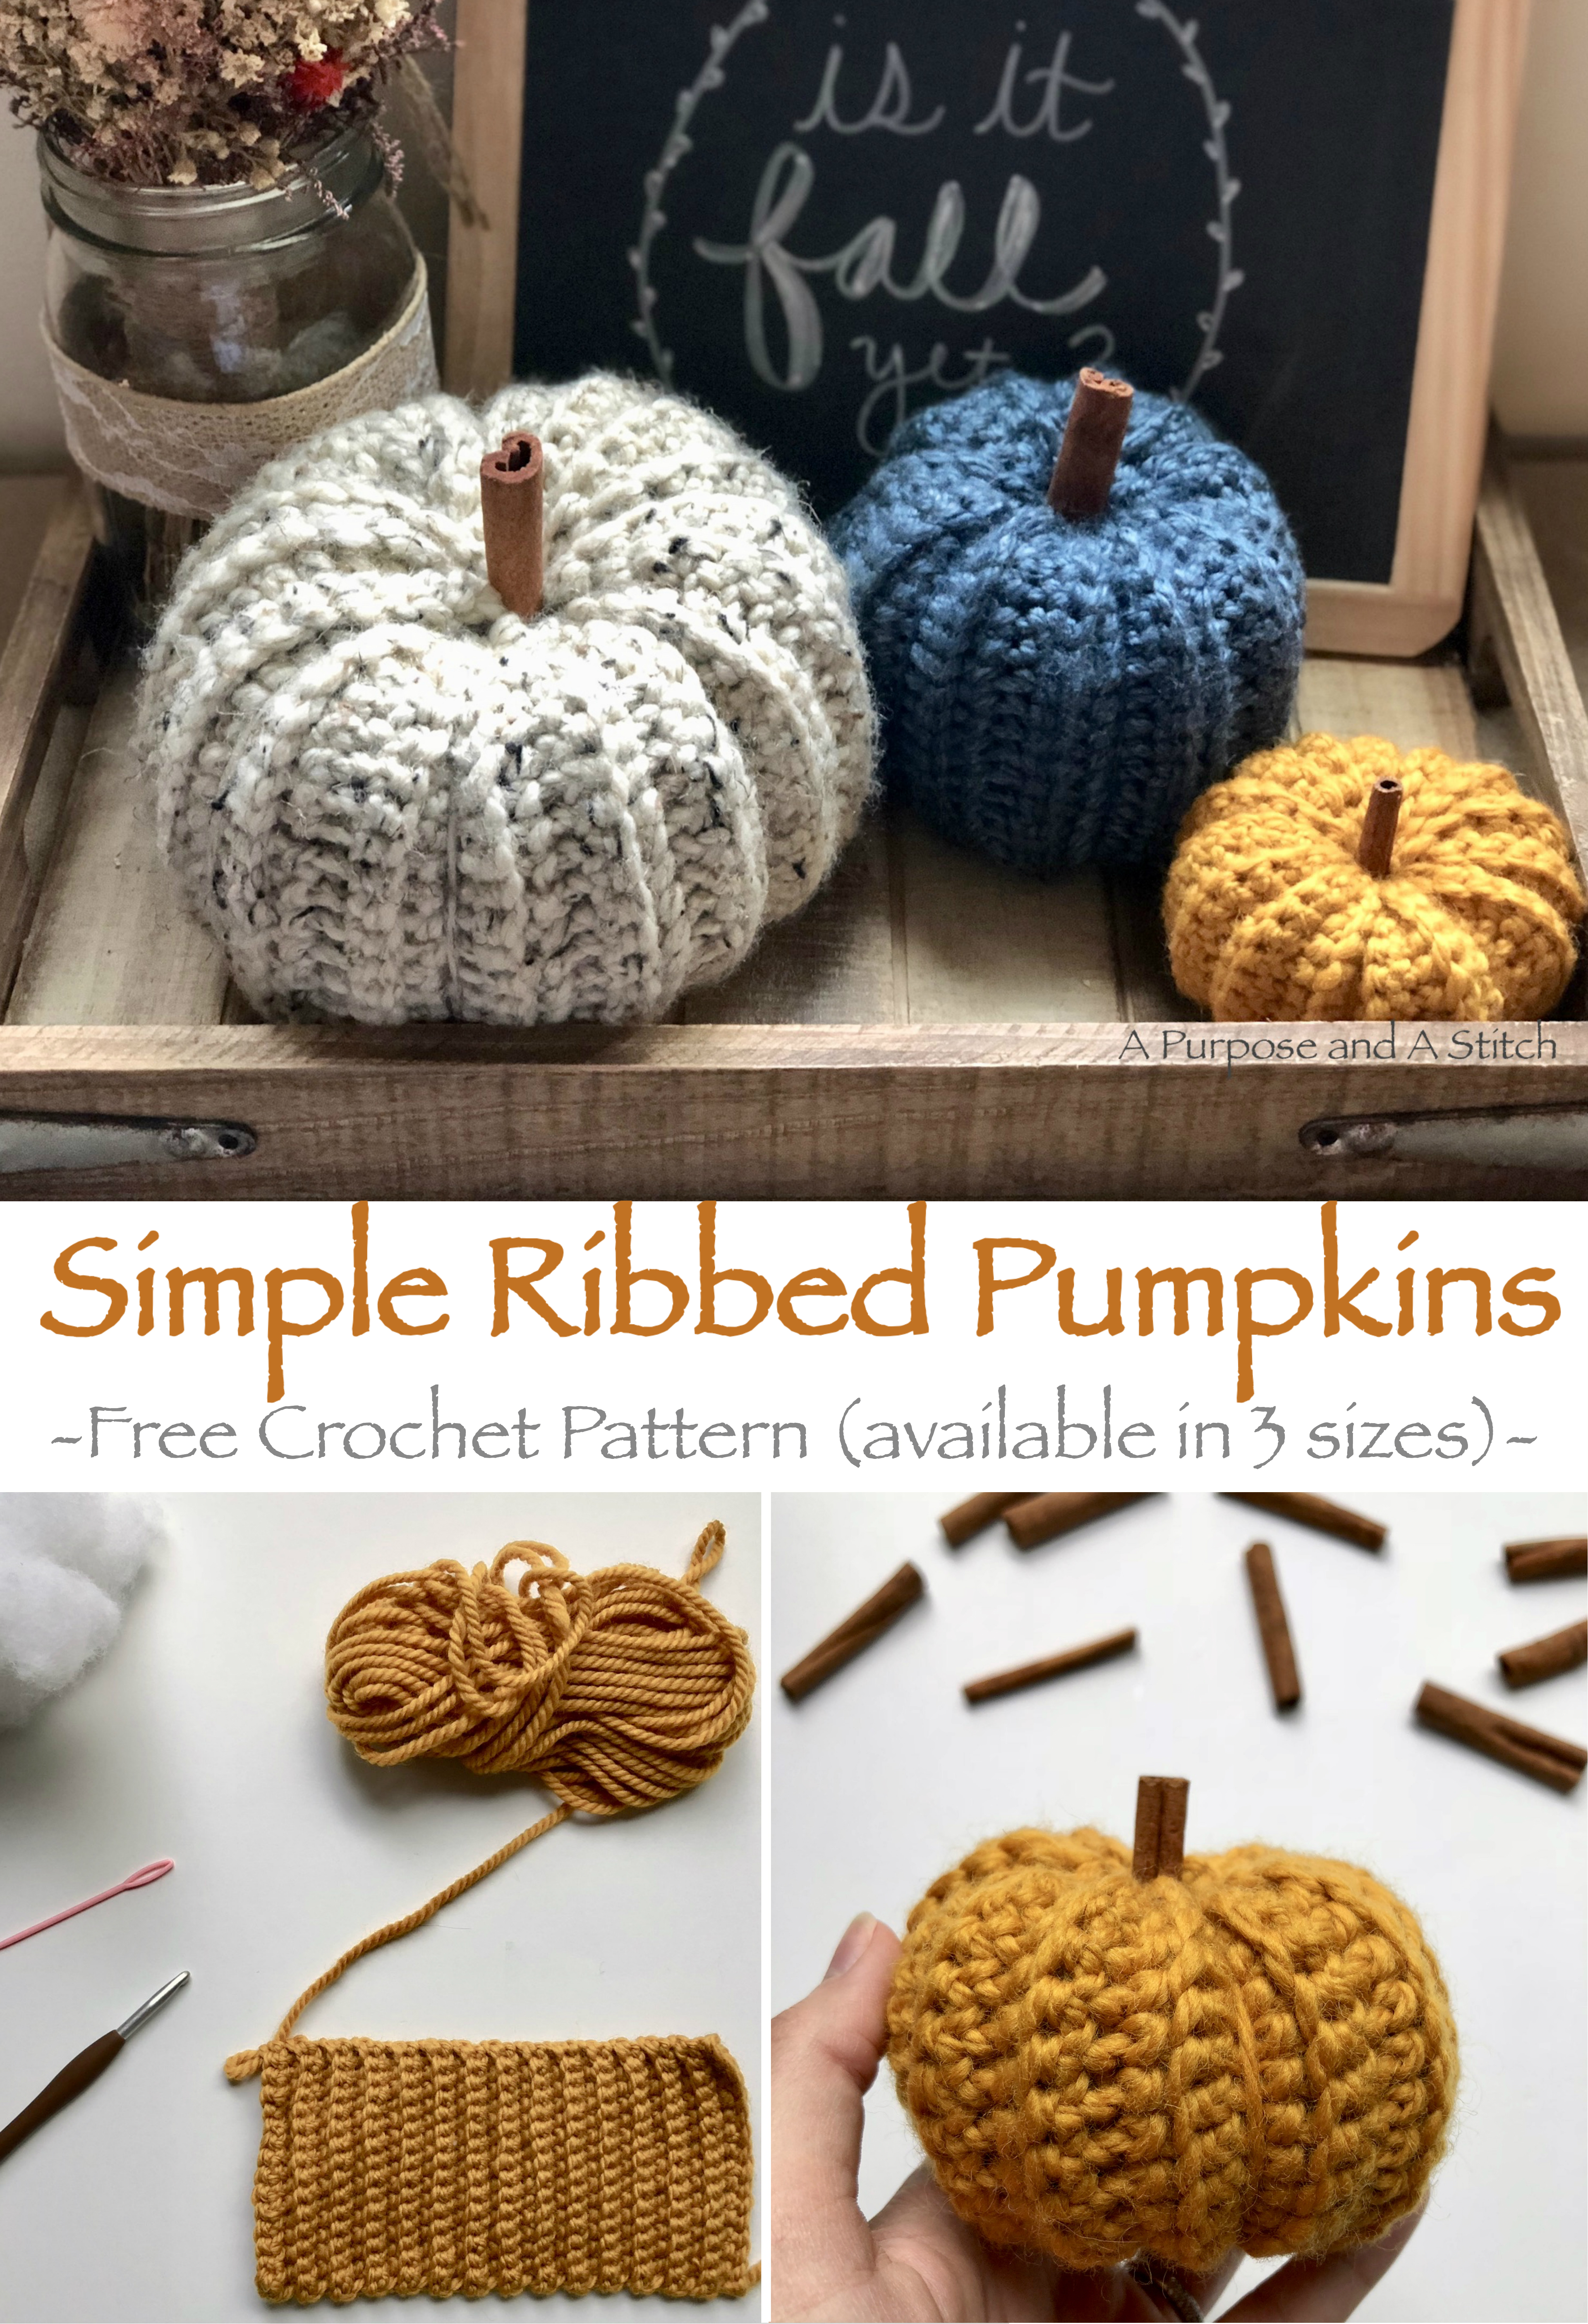 Simple Ribbed Pumpkins.jpg